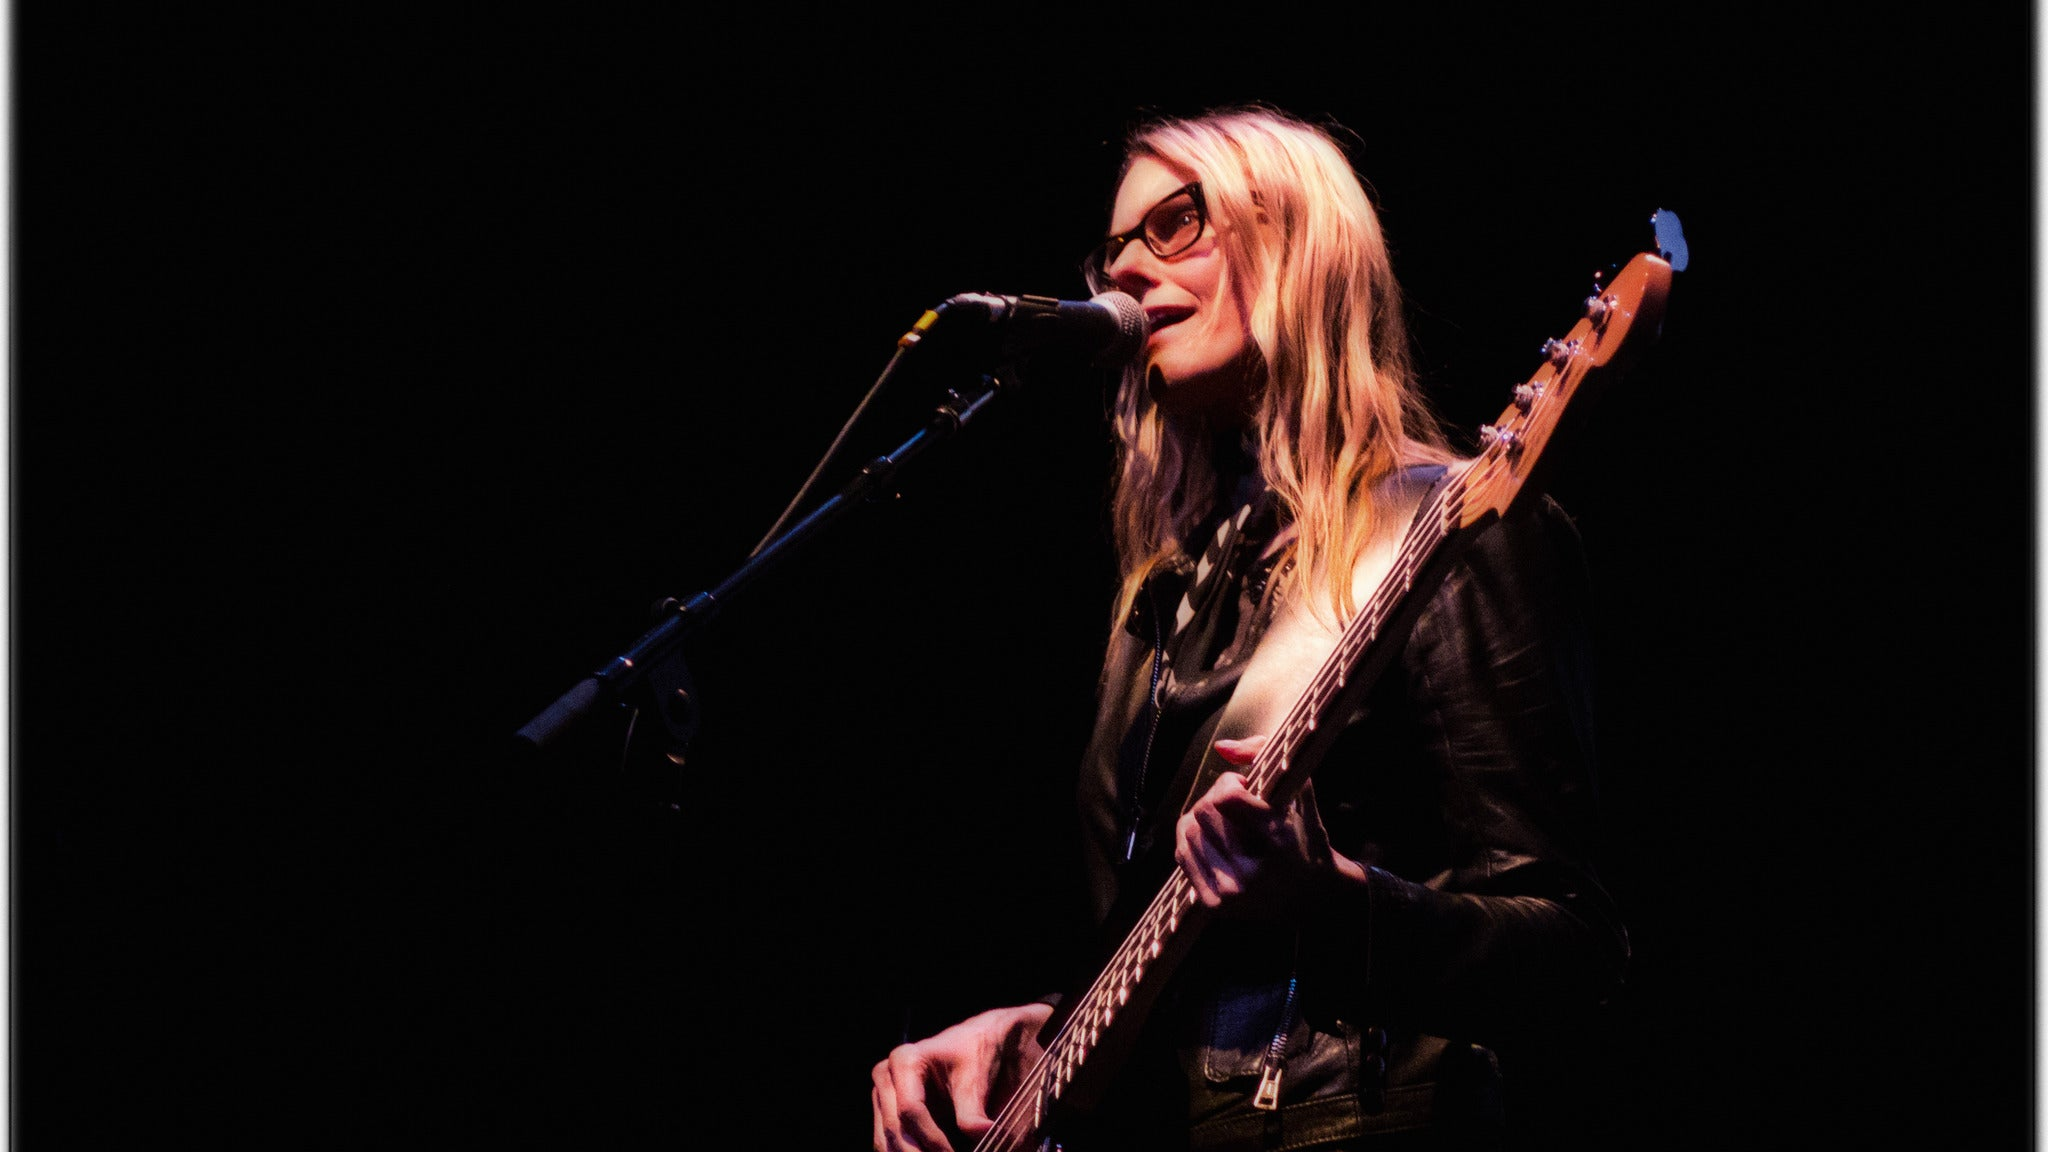 Aimee Mann at The Fillmore